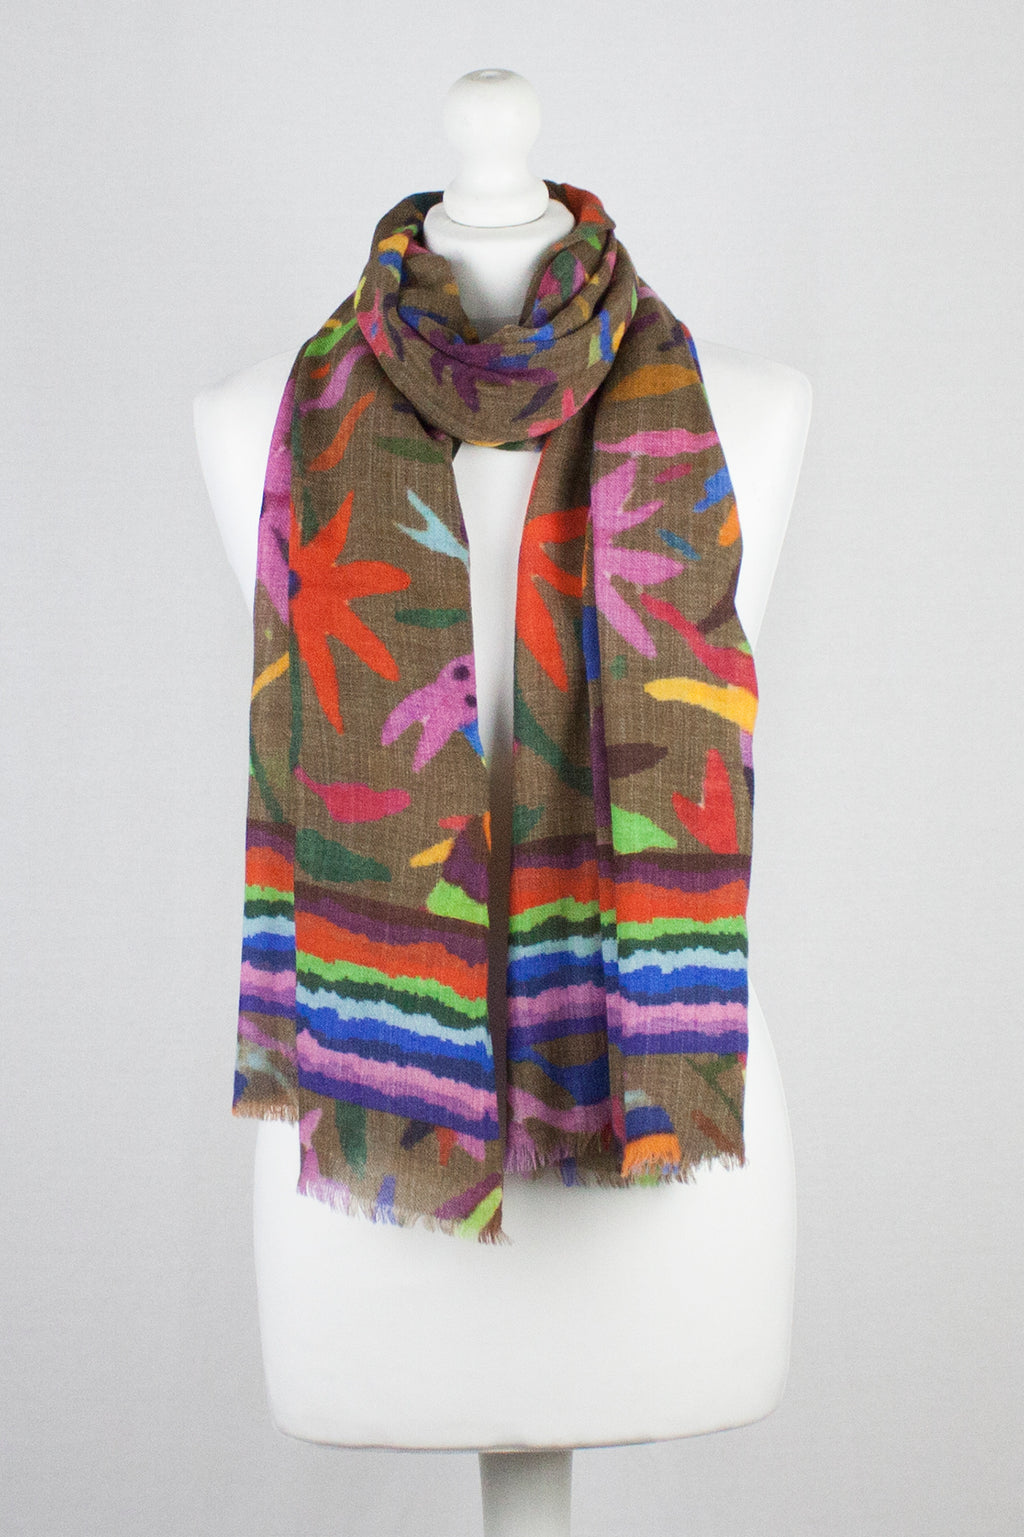 Bright Life Print Merino Wool Scarf - Brown Multi